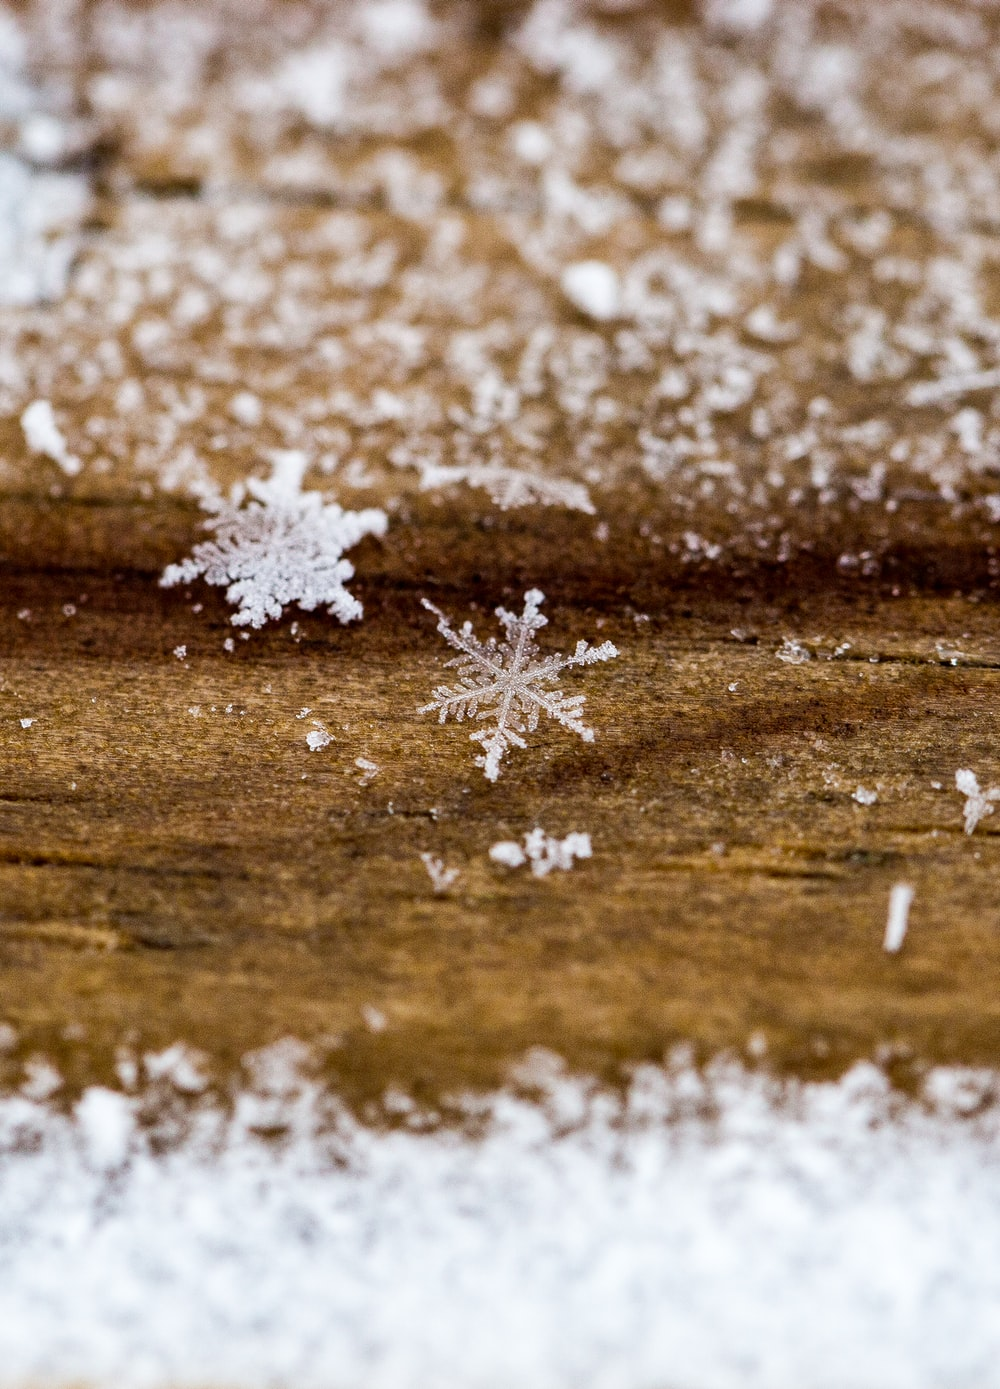 snowflakes on ground